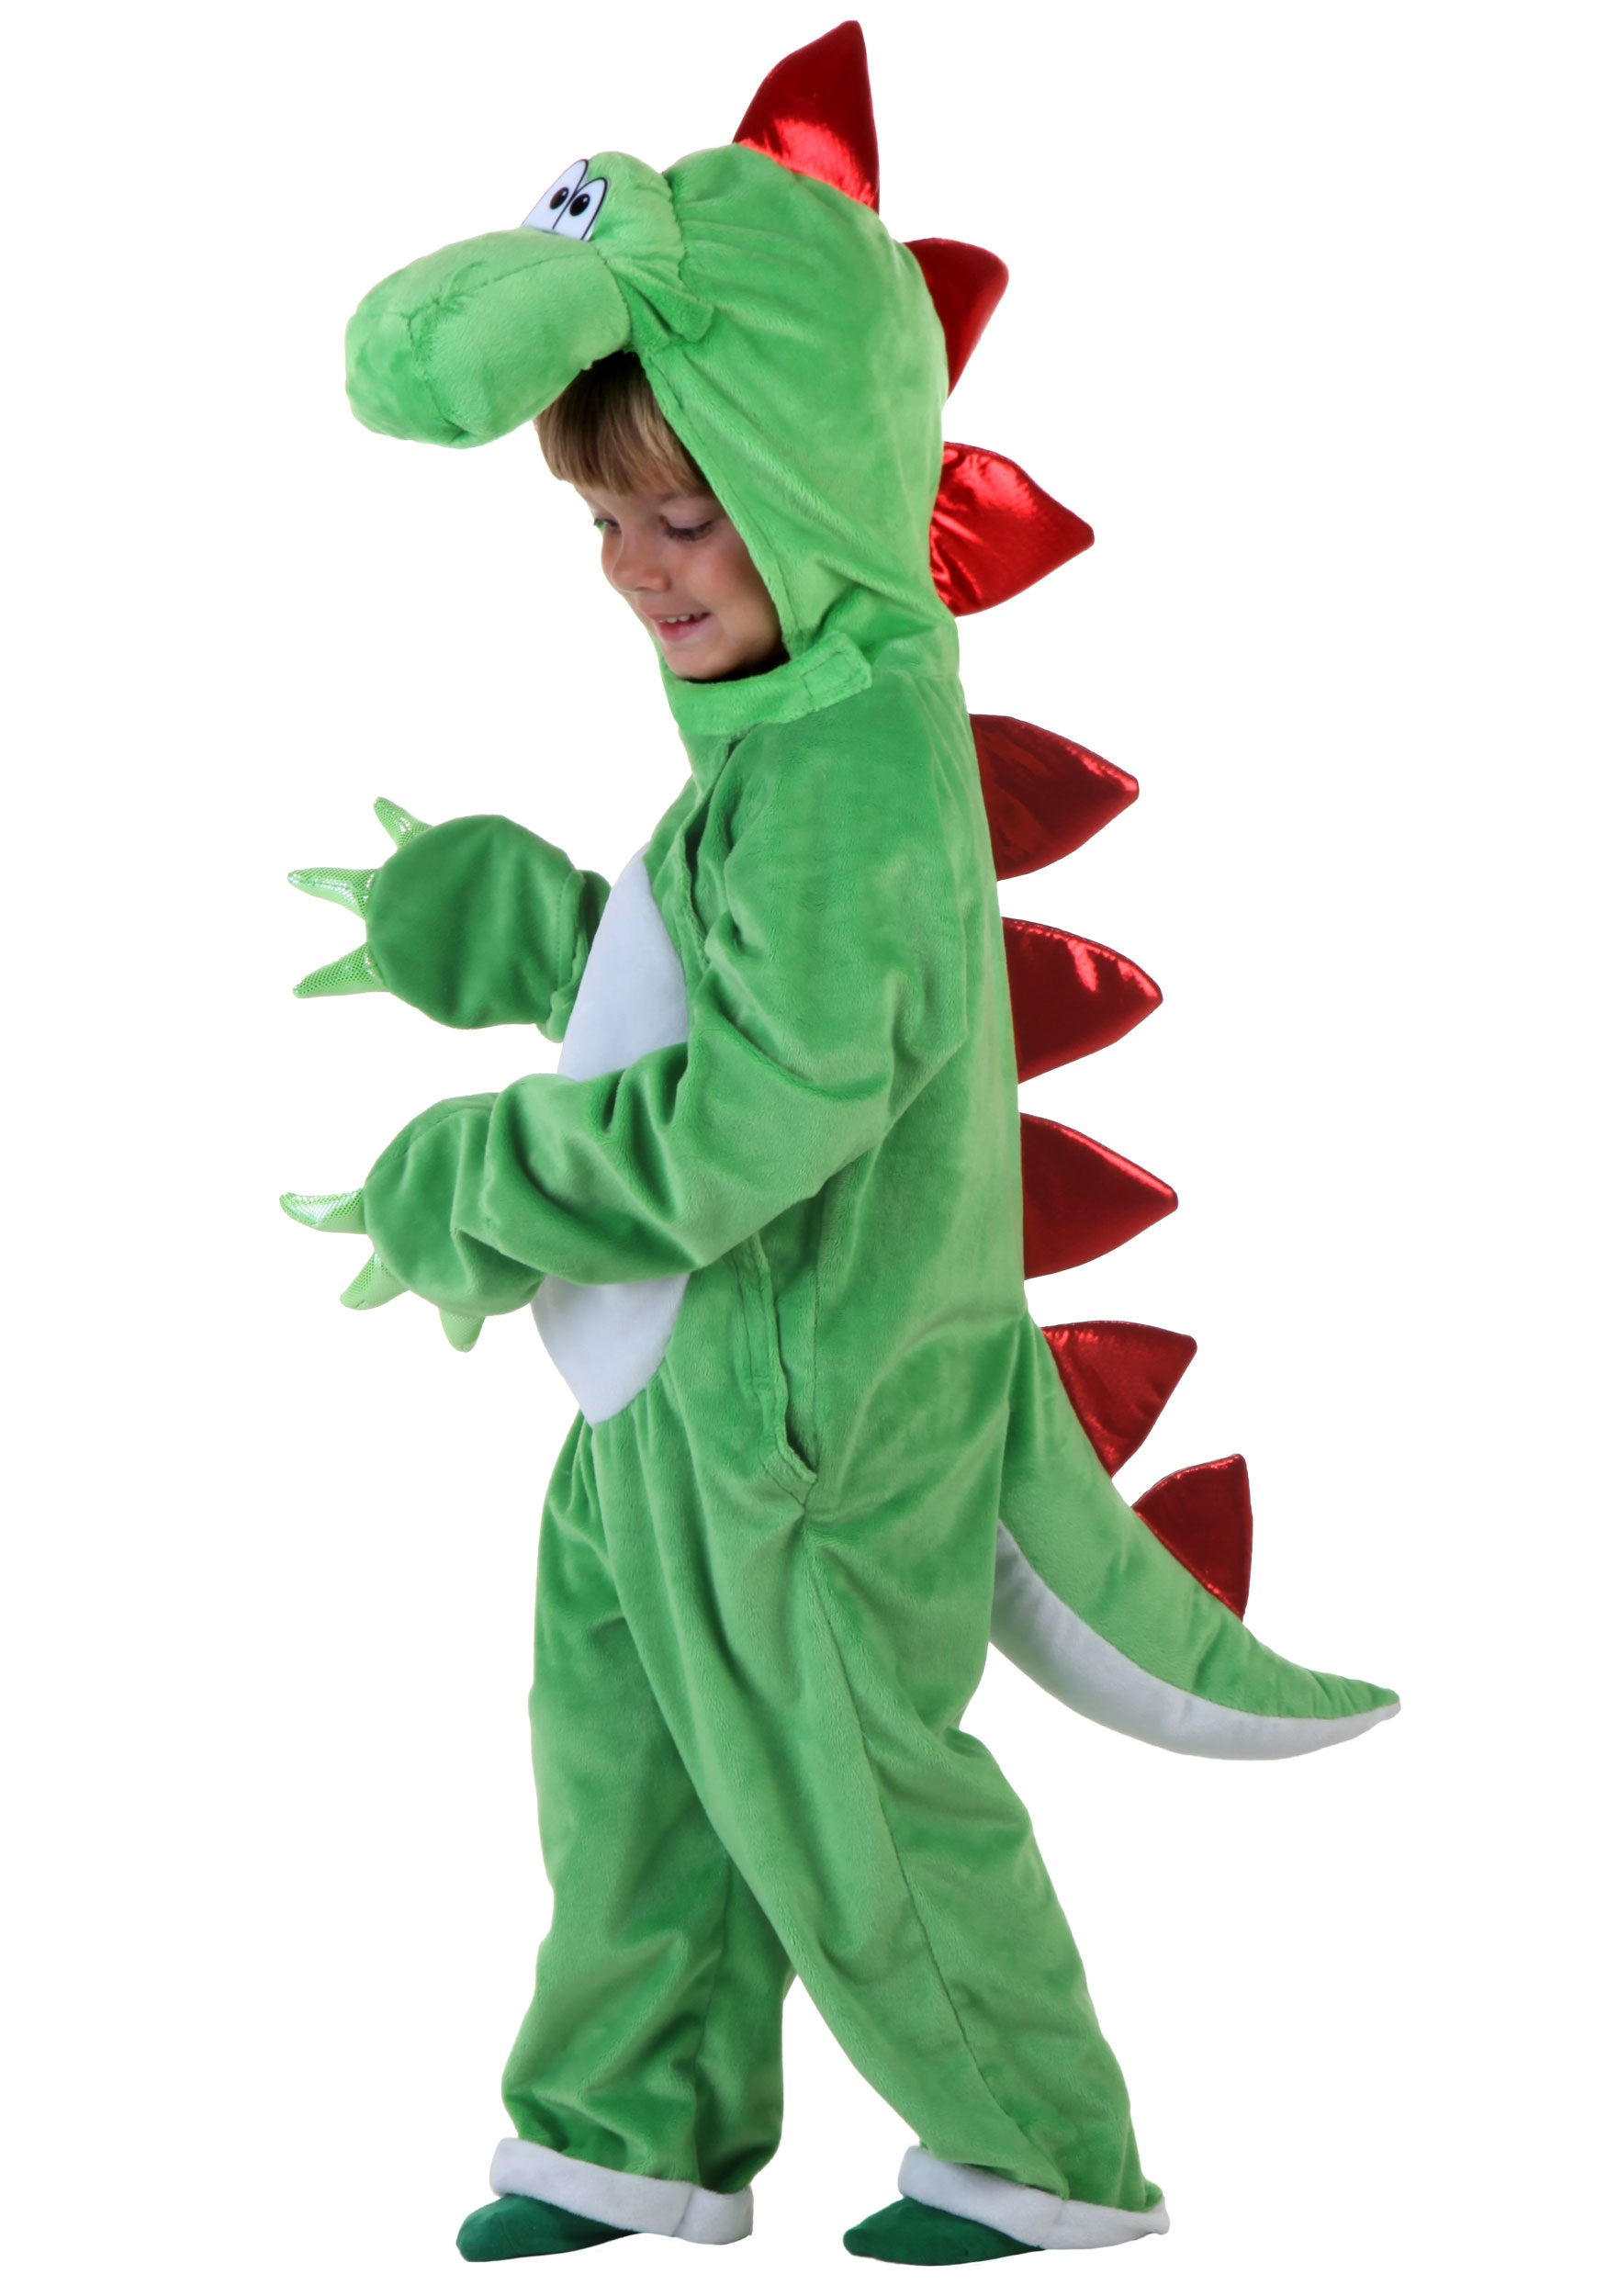 Child Green Dinosaur w/ Red Spikes  sc 1 st  Halloween Costumes & Child Green Dinosaur w/ Red Spikes - Halloween Costumes